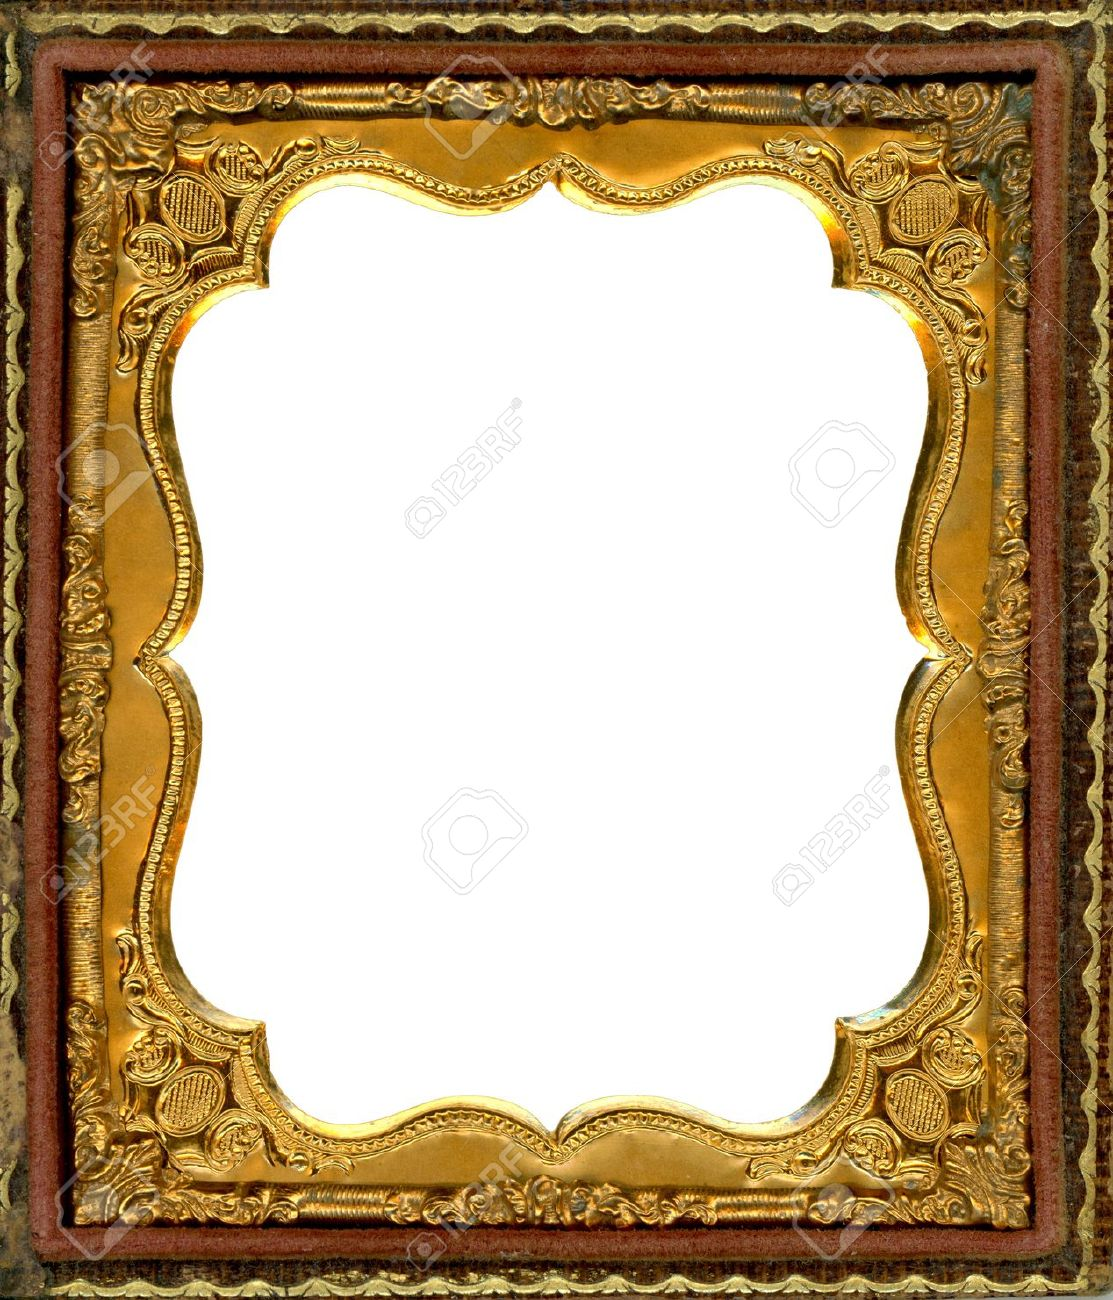 Ornate Gold Metal Picture Frame From The 1850s. This Type Of.. Stock ...